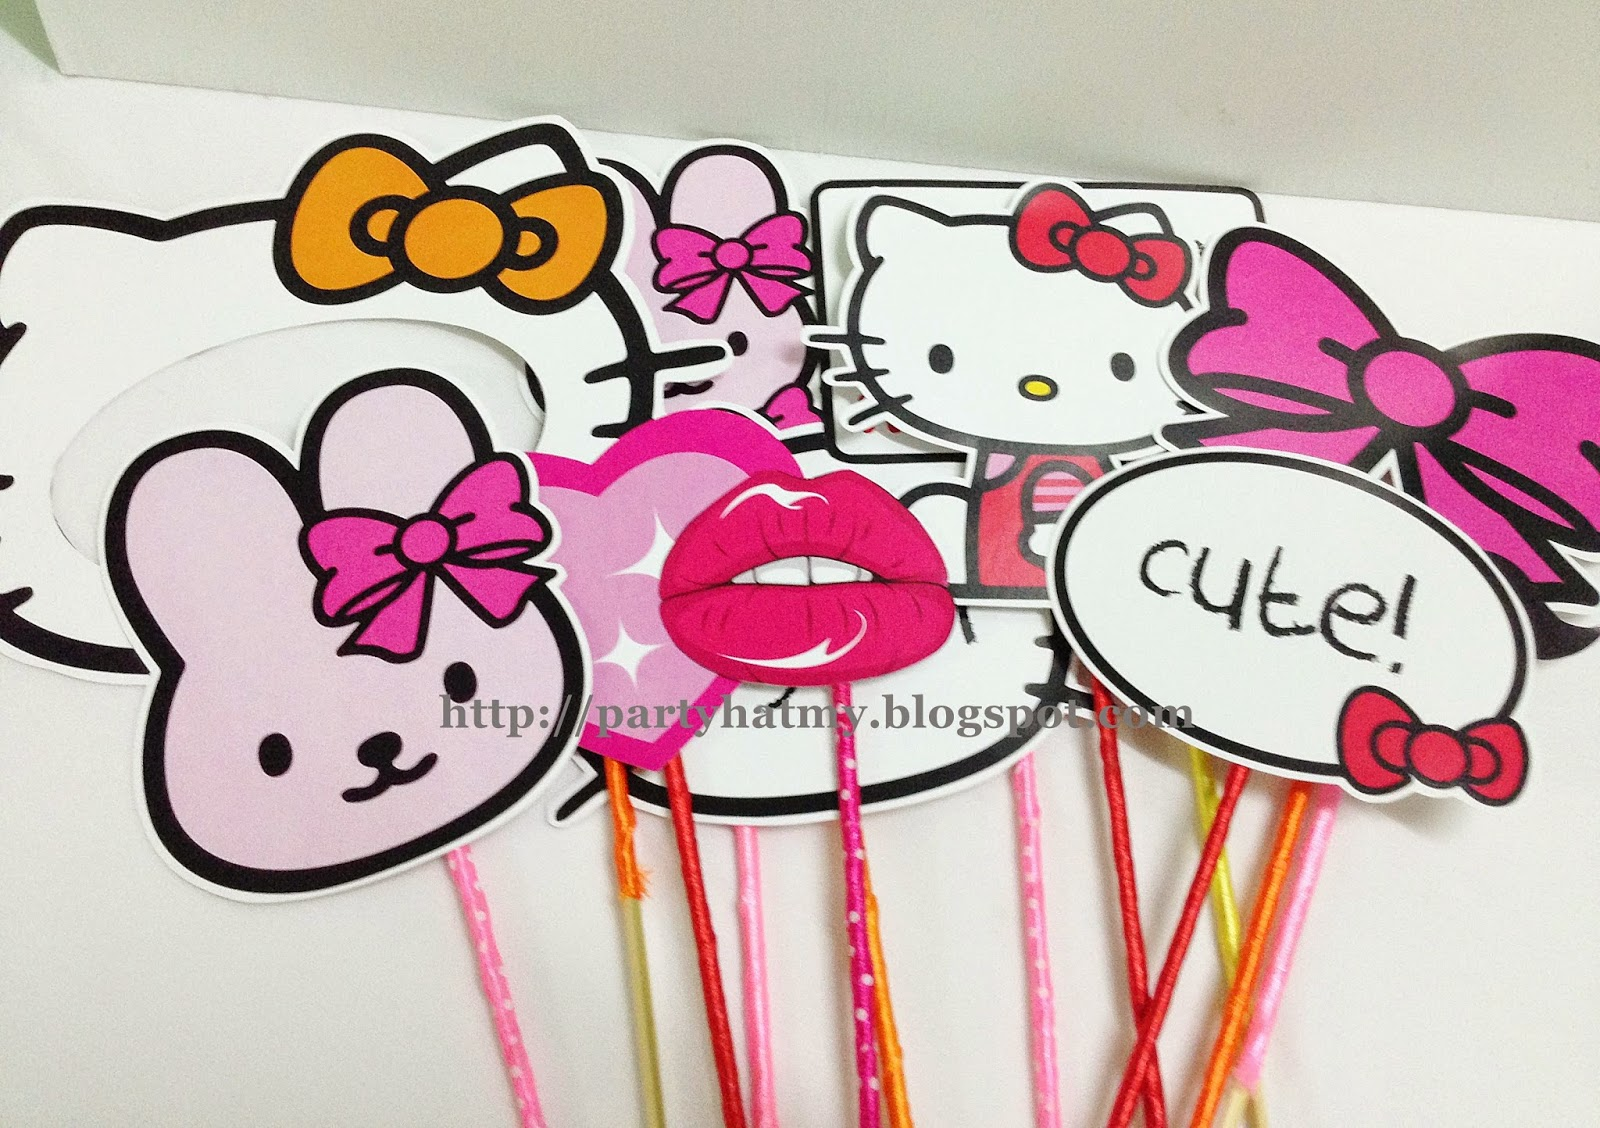 Party Hat Malaysia Candy Buffet Theme Decorations Goodie Bags